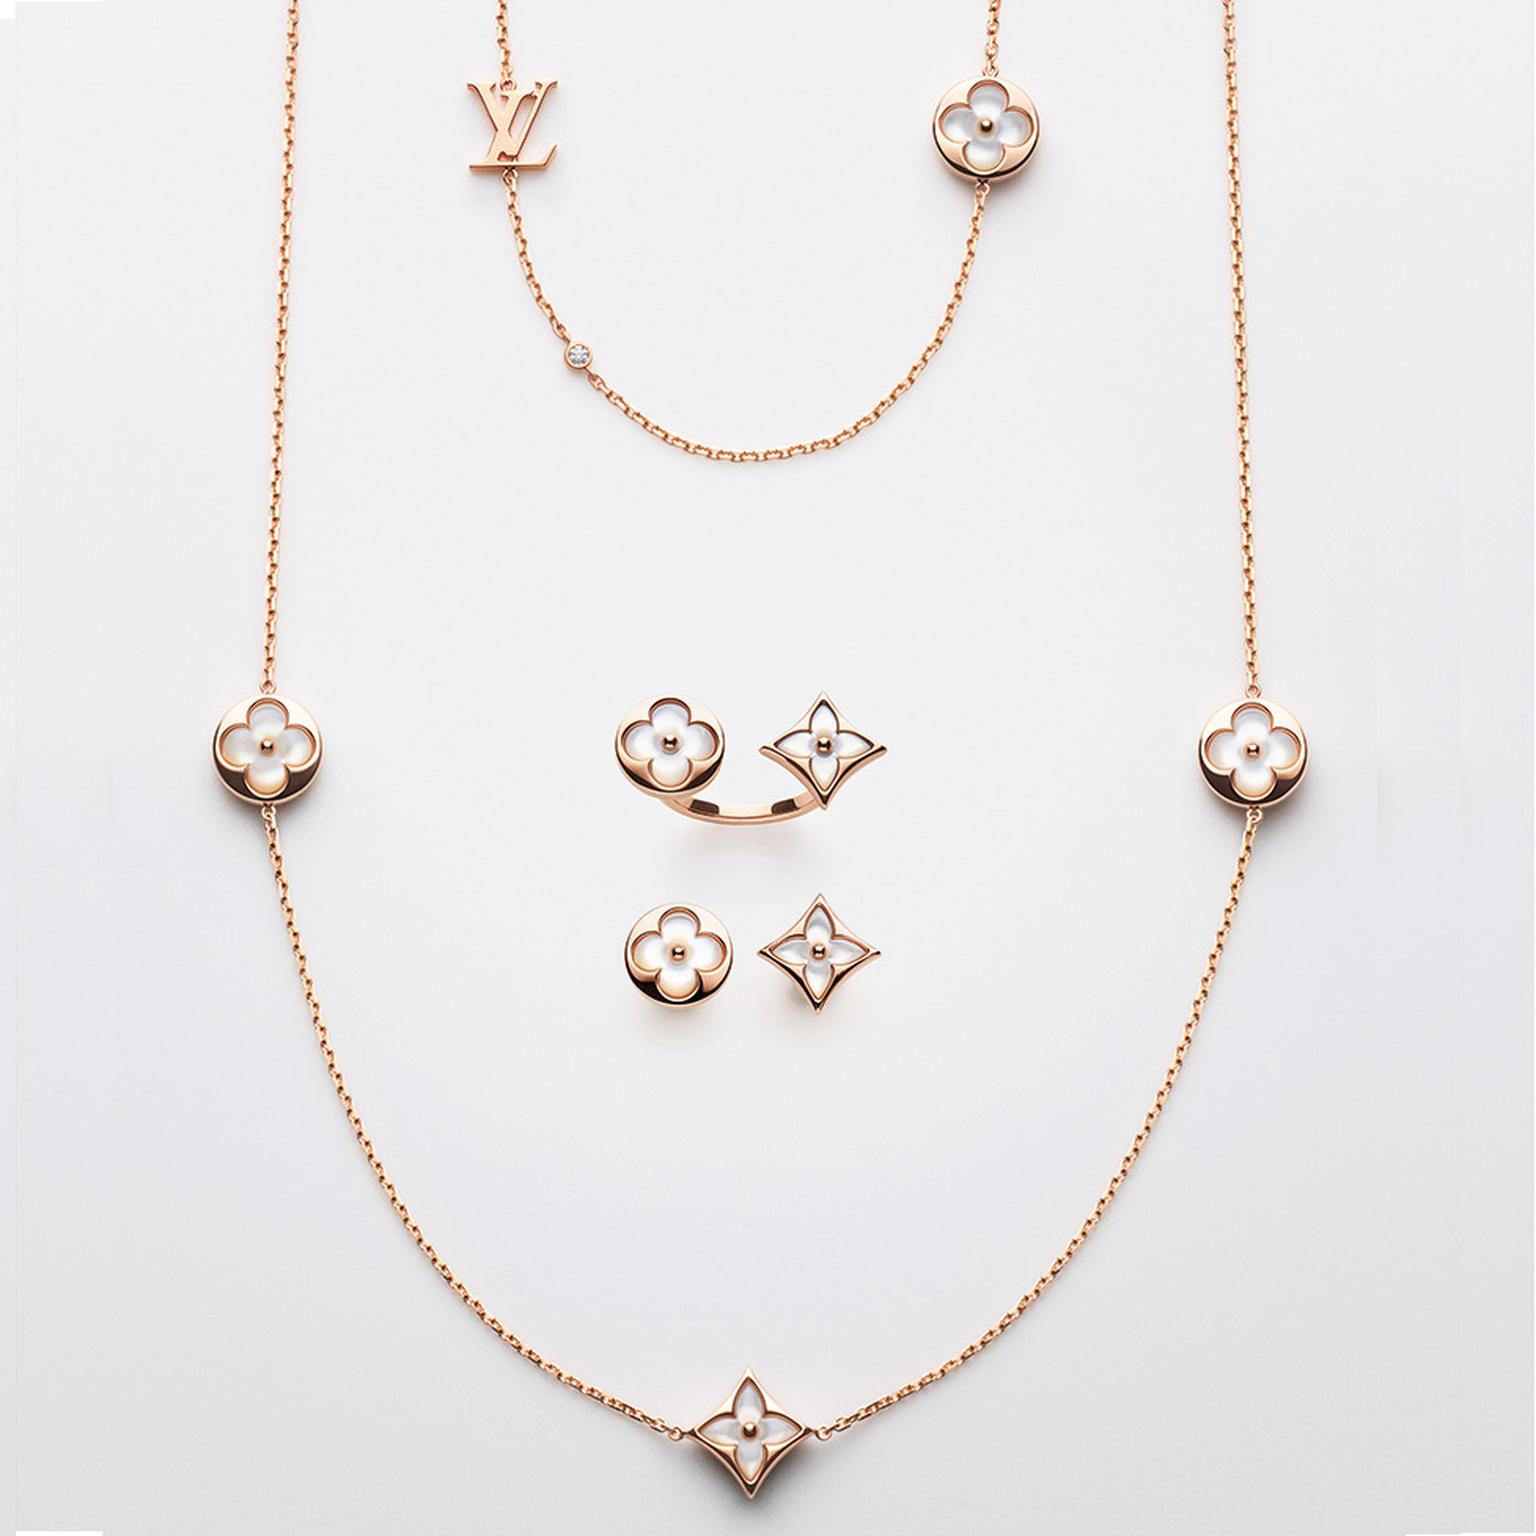 Louis Vuitton Blossom Color BB jewels necklace ring and earrings